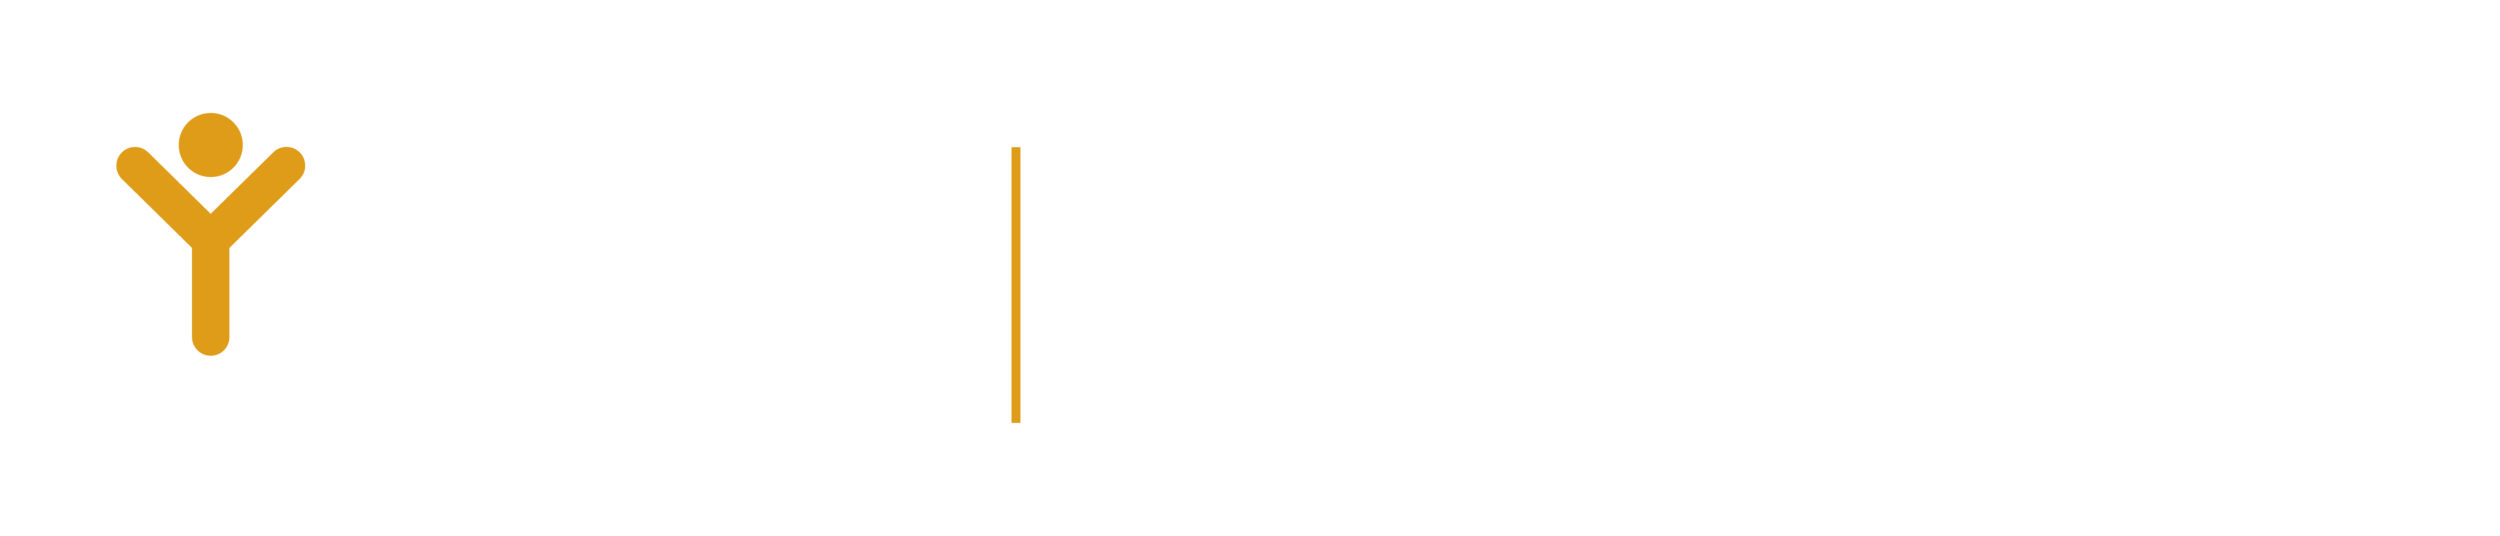 Logo_LeadershipSummit2018-YW.png